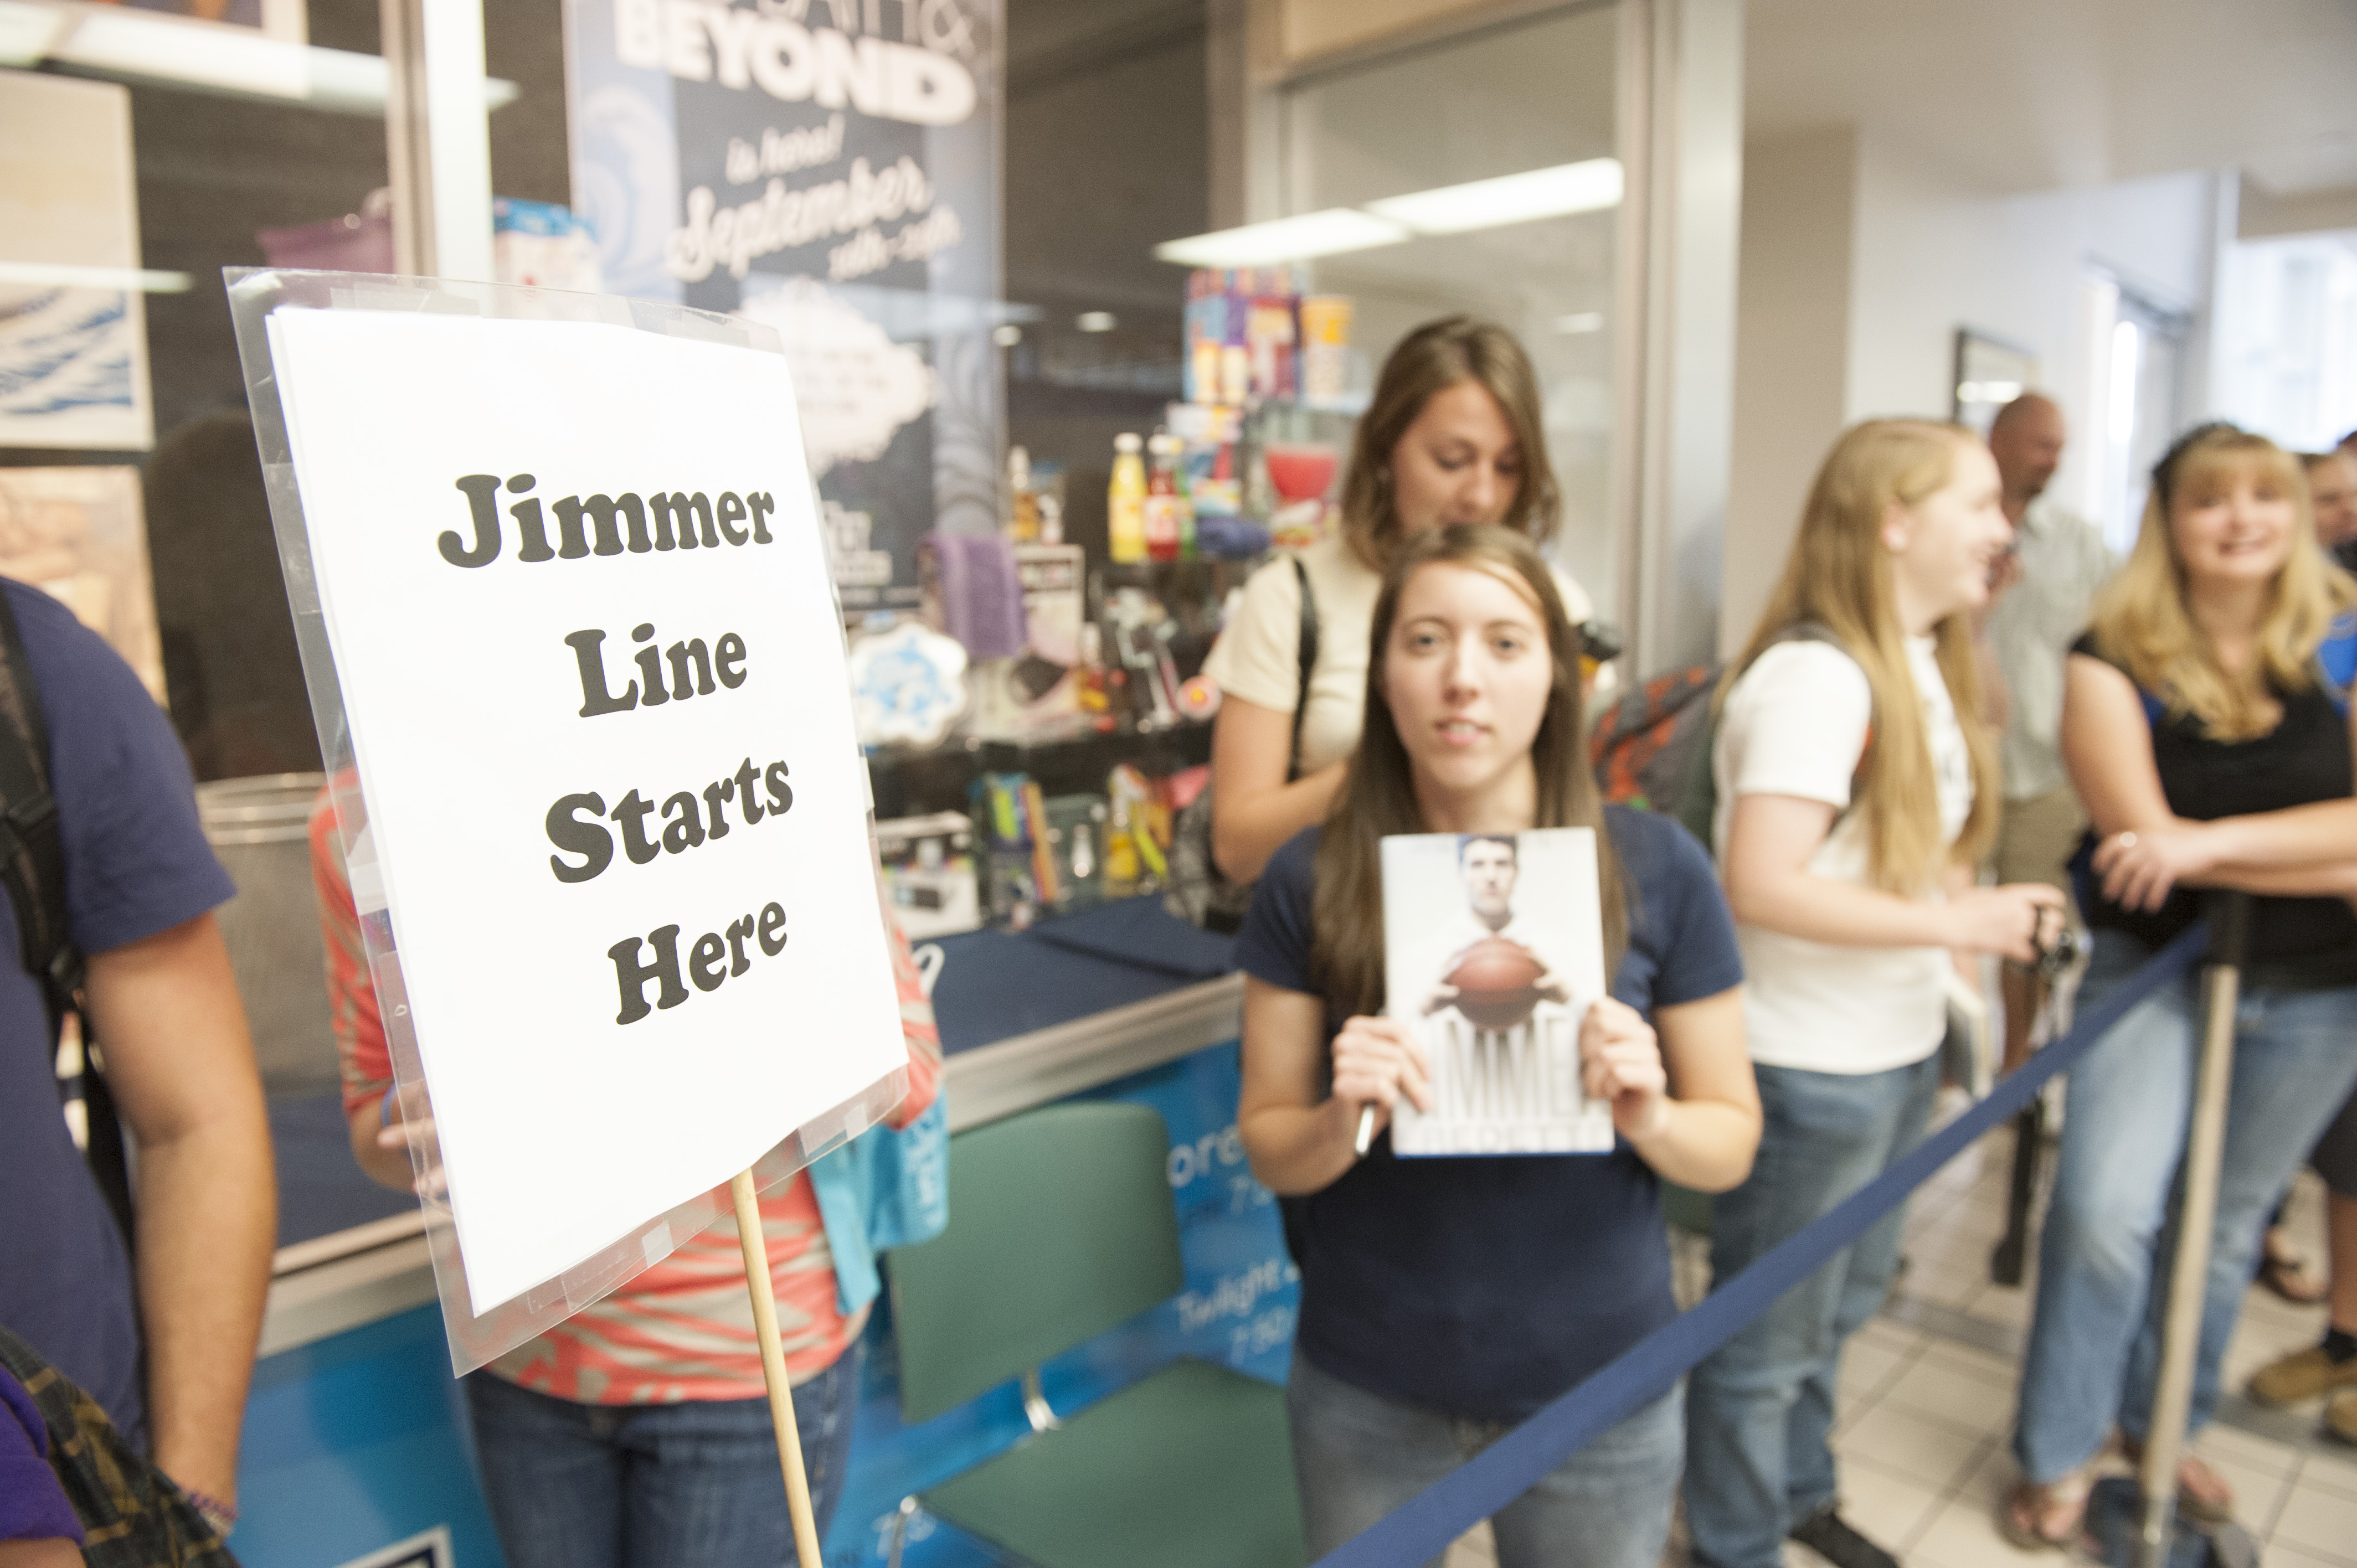 Students in line at the BYU Bookstore wait for Jimmer to autograph his book. Photo by Chris Bunker